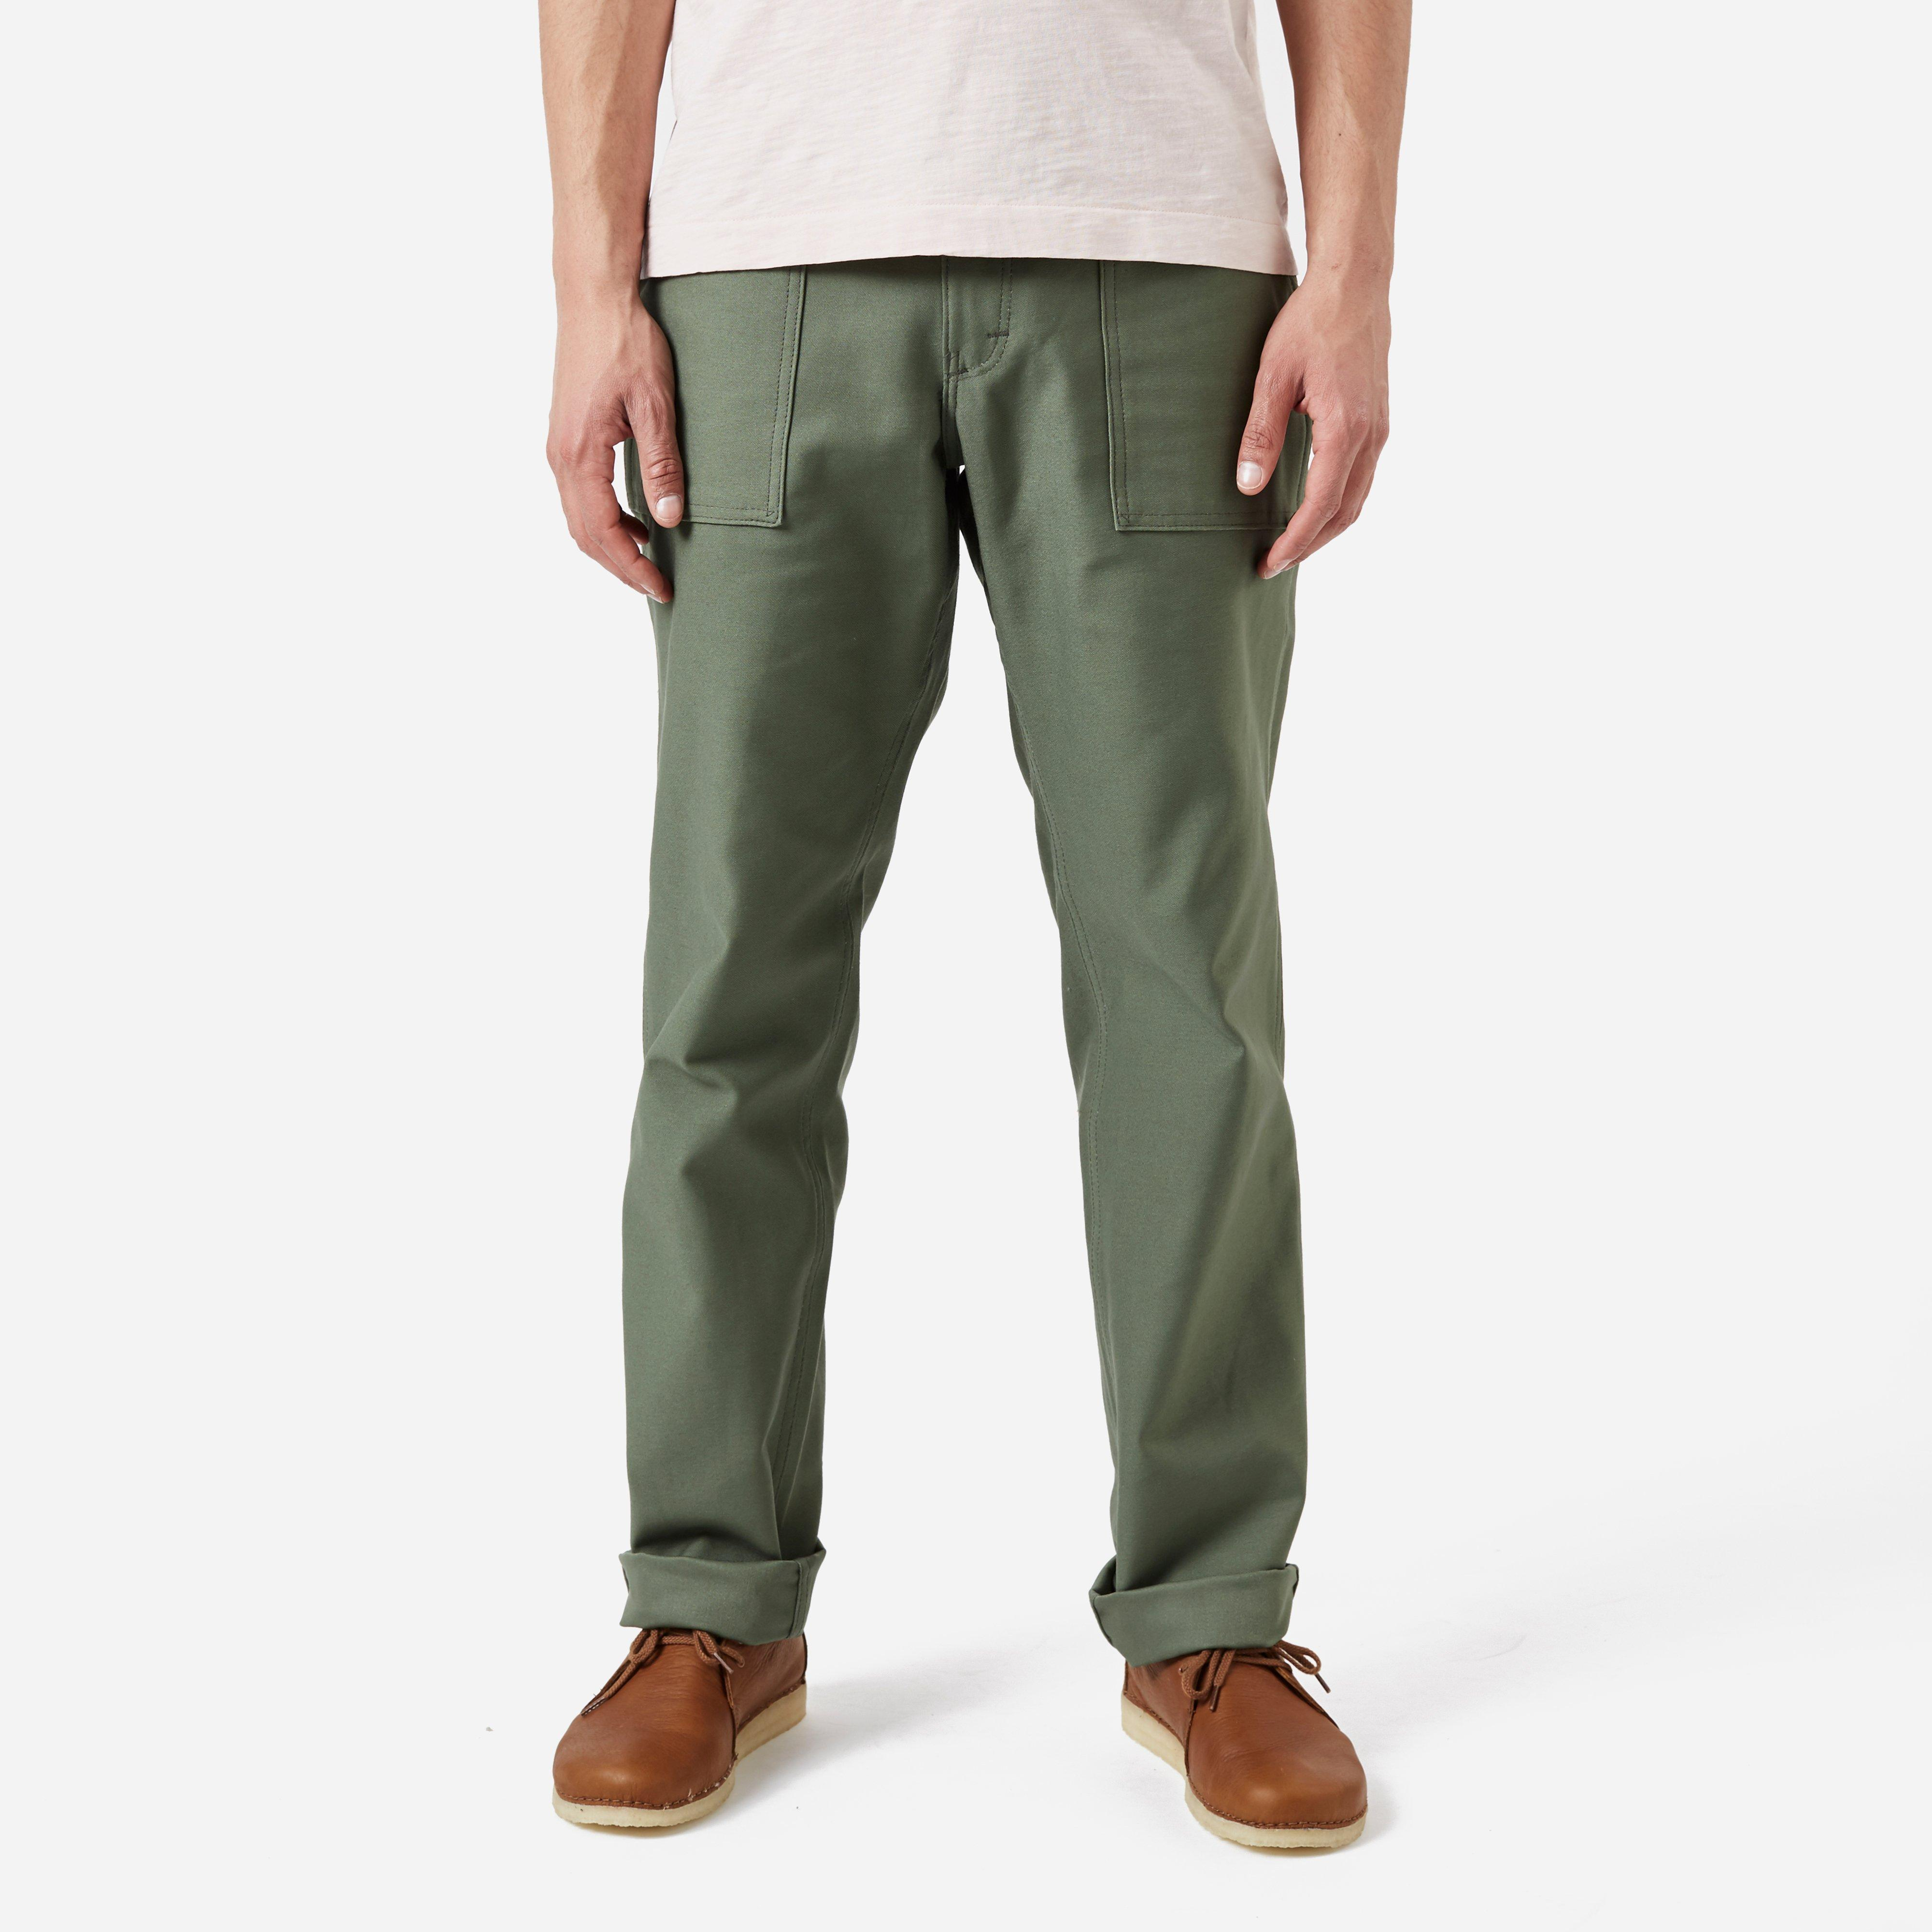 Stan Ray Taper Fit Fatigue Pant